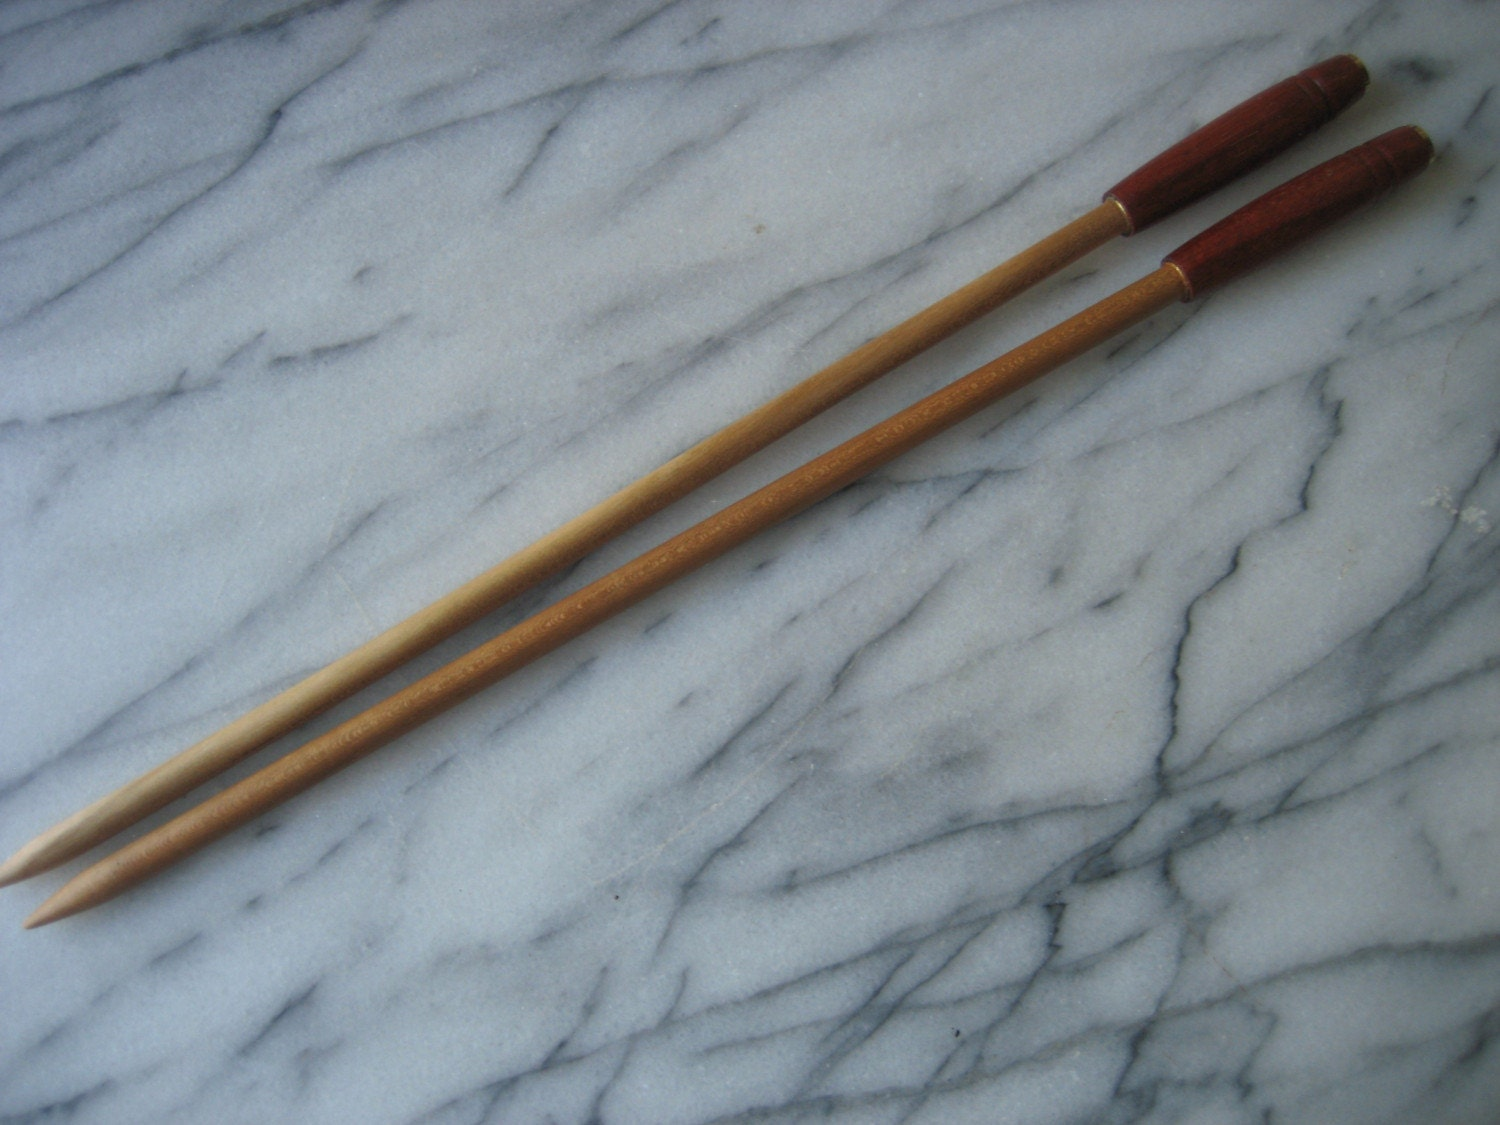 Wooden Knitting Needles : Hand Made Wooden Knitting Needles Cherry/Bloodwood by Craftiness